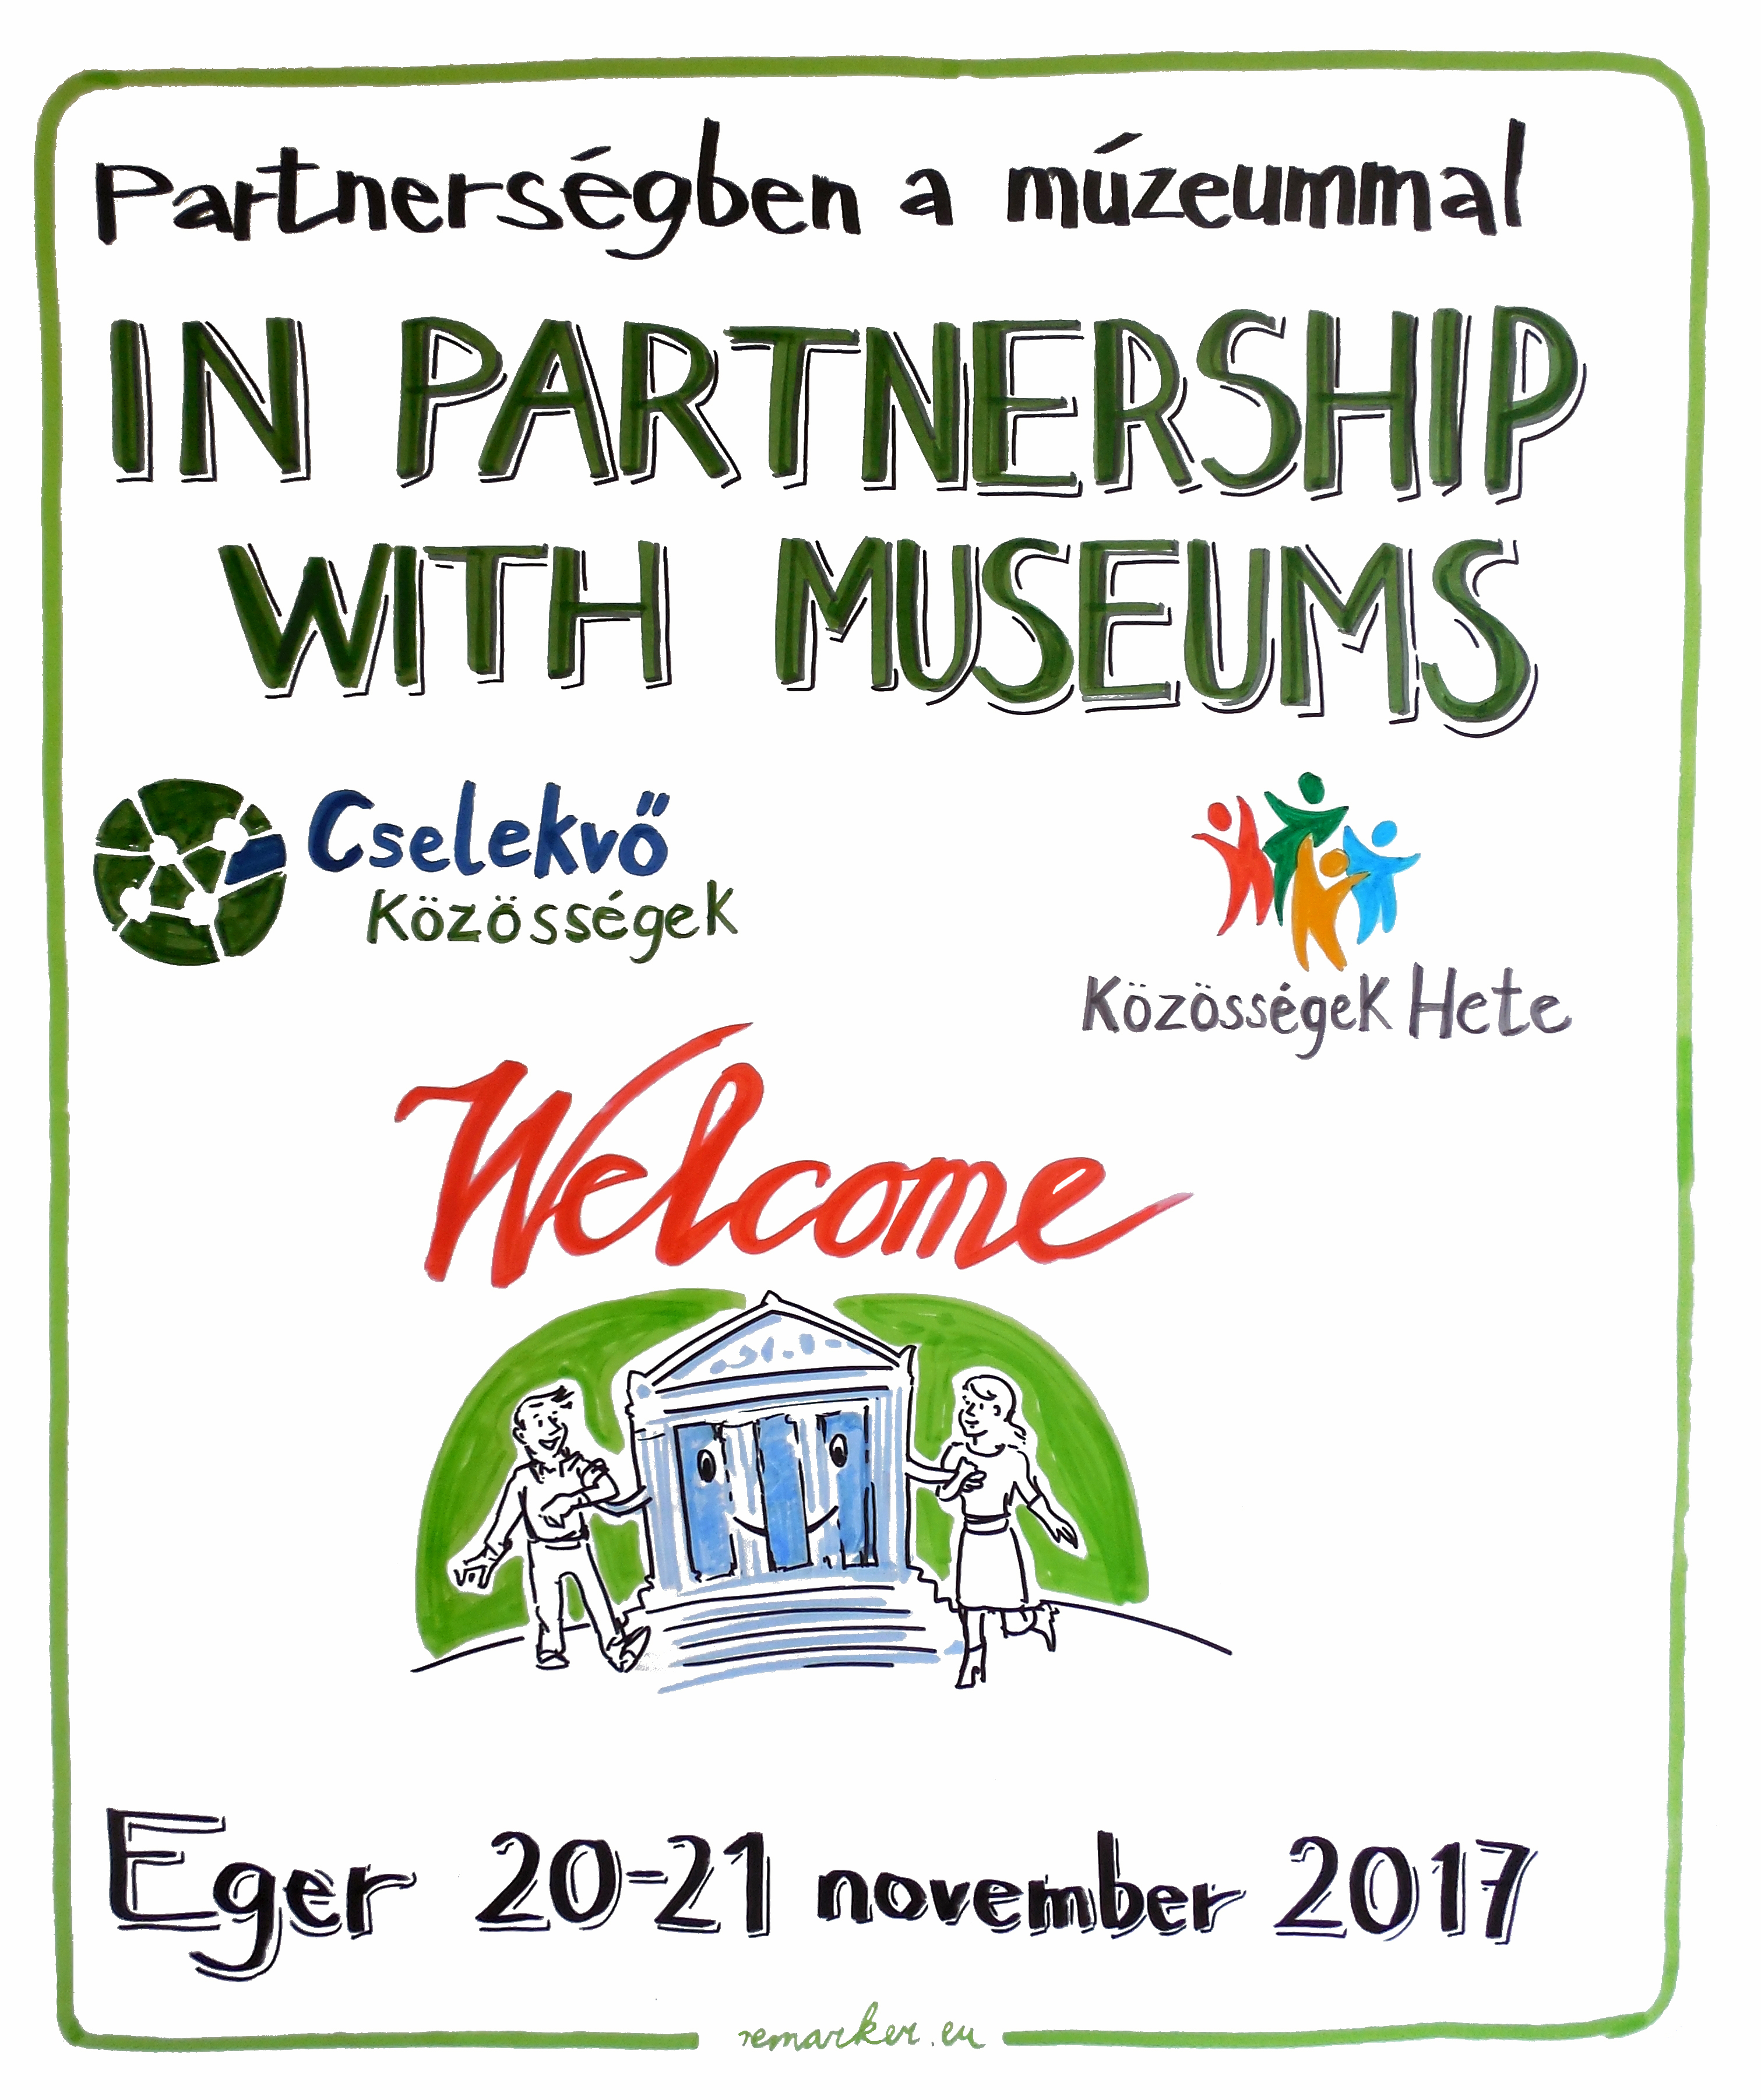 IN_PARTNERSHIP_WITH_MUSEUMS_20-21-NOV-2017_000